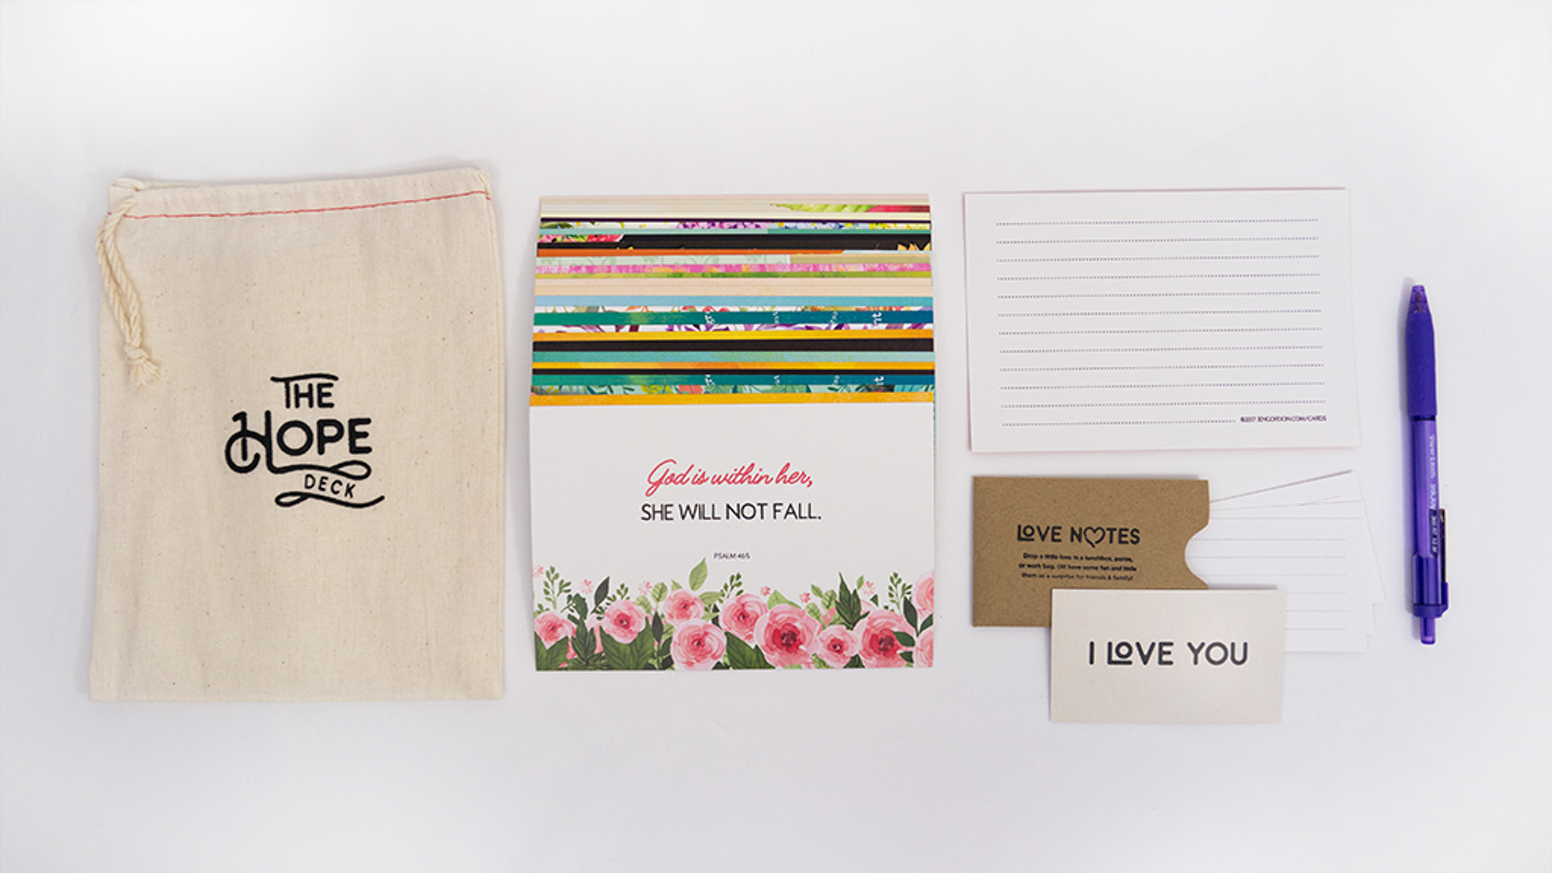 The Hope Deck is a collection of inspirational Bible verse postcards packaged in a soft cloth bag - a perfect stocking stuffer!